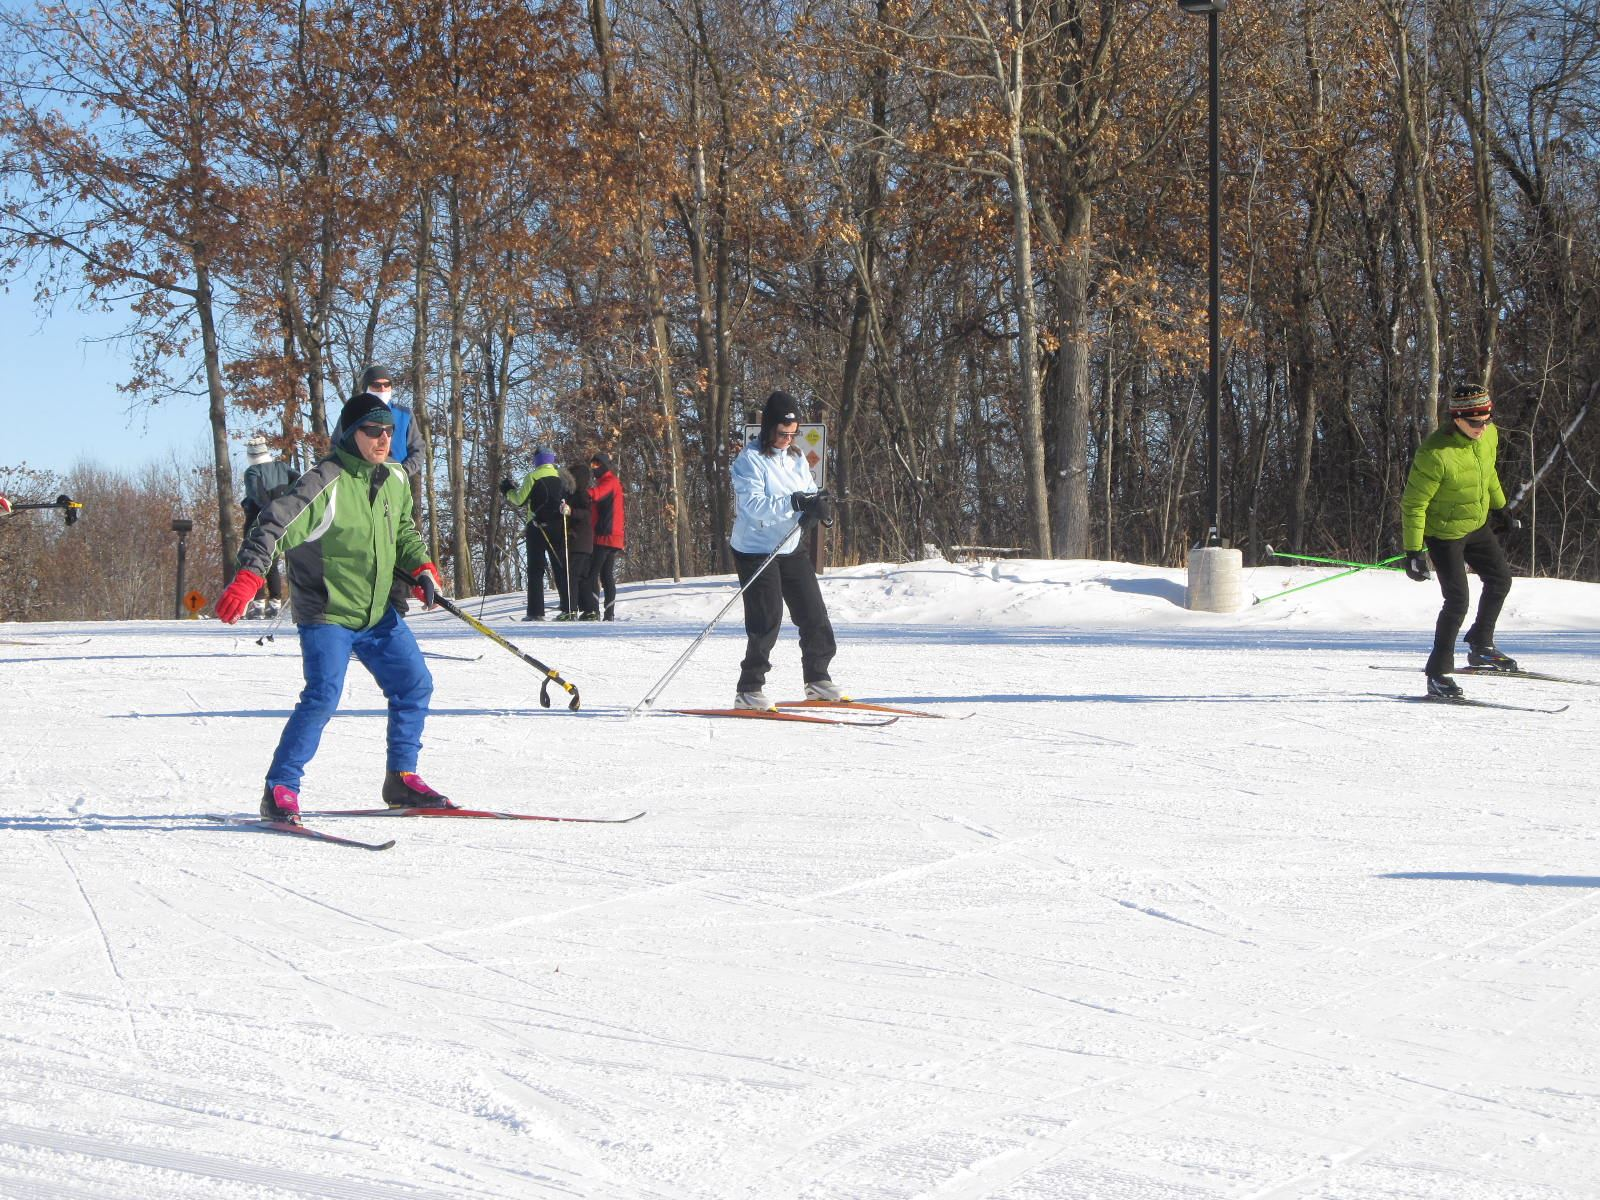 Lake Elmo Park - learn to ski